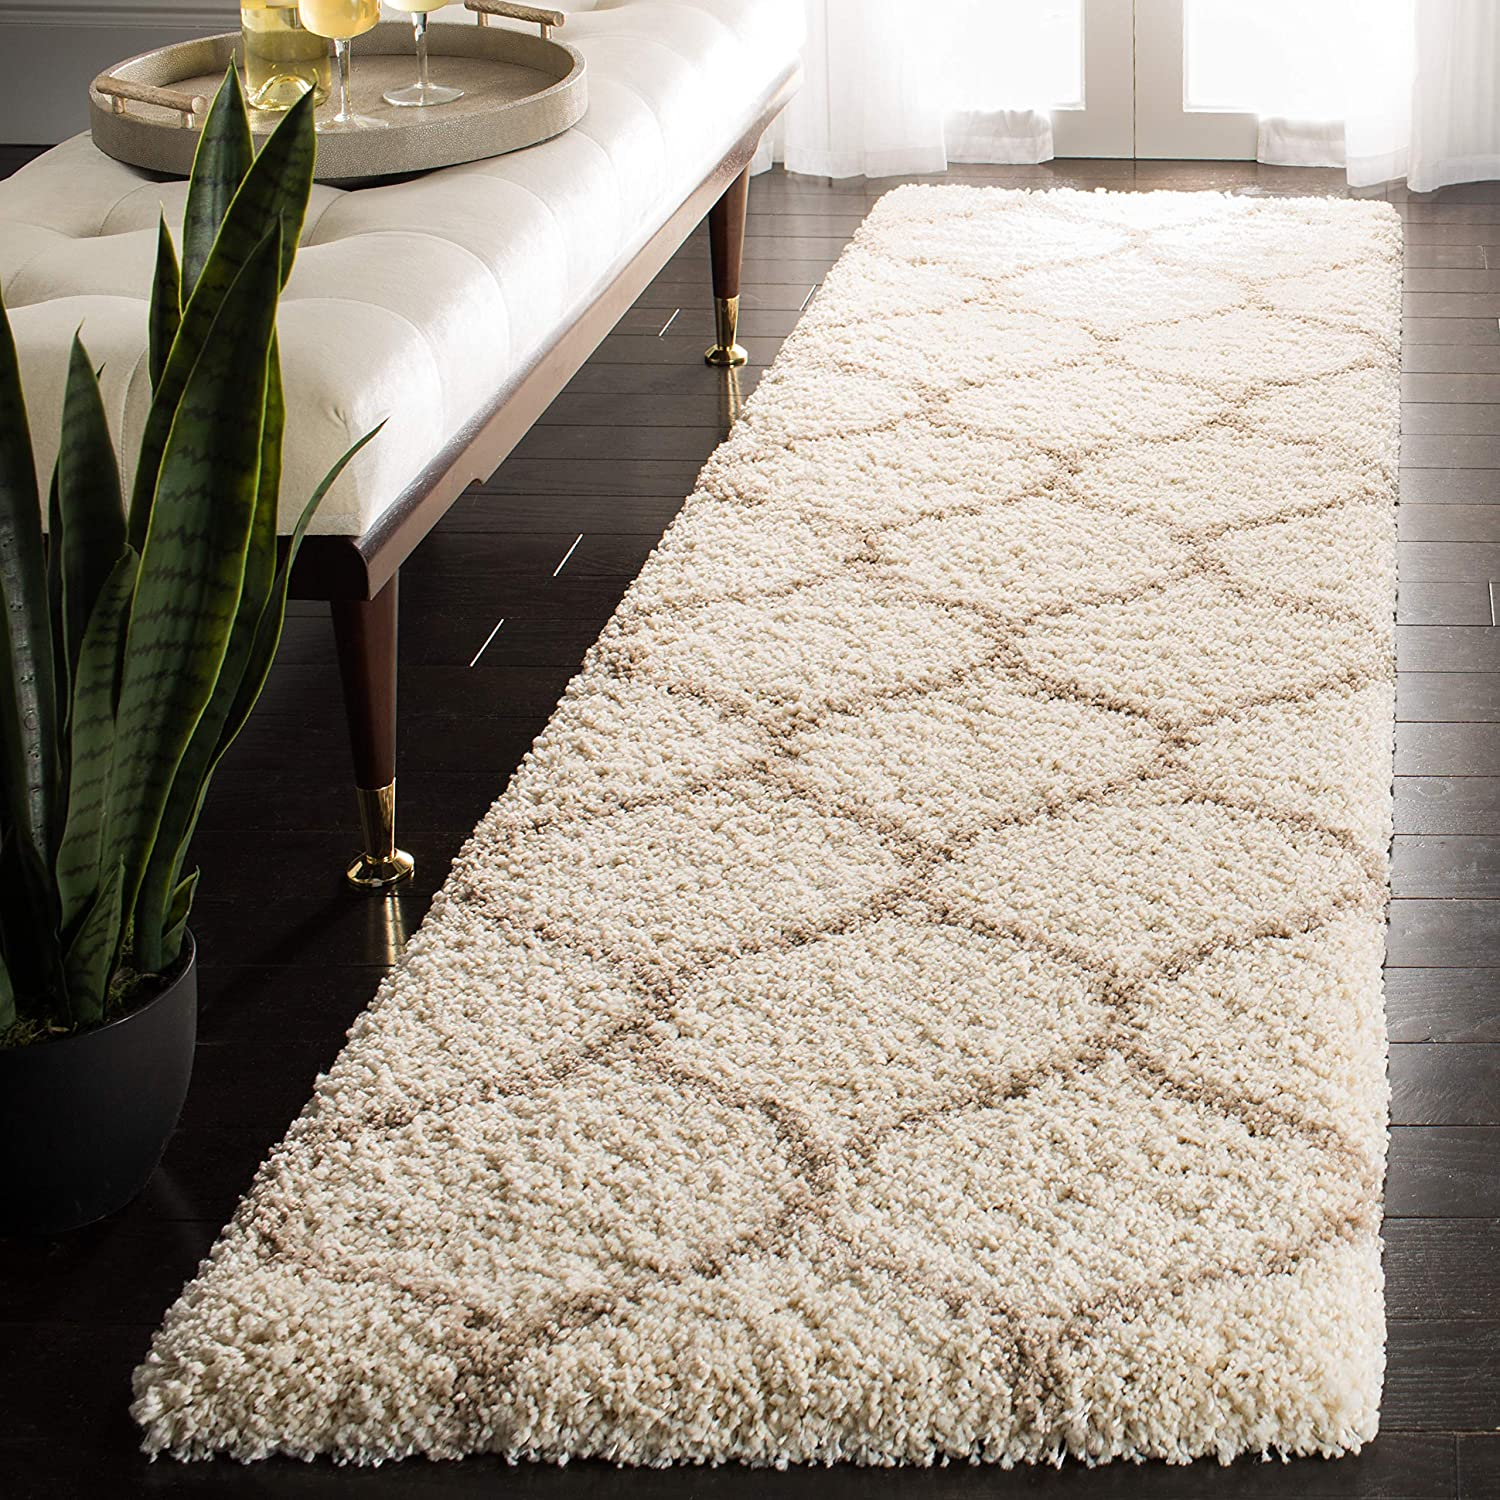 """Safavieh Hudson Shag Collection SGH280D Ivory and Beige Moroccan Ogee Plush Runner (2'3"""" x 6')"""